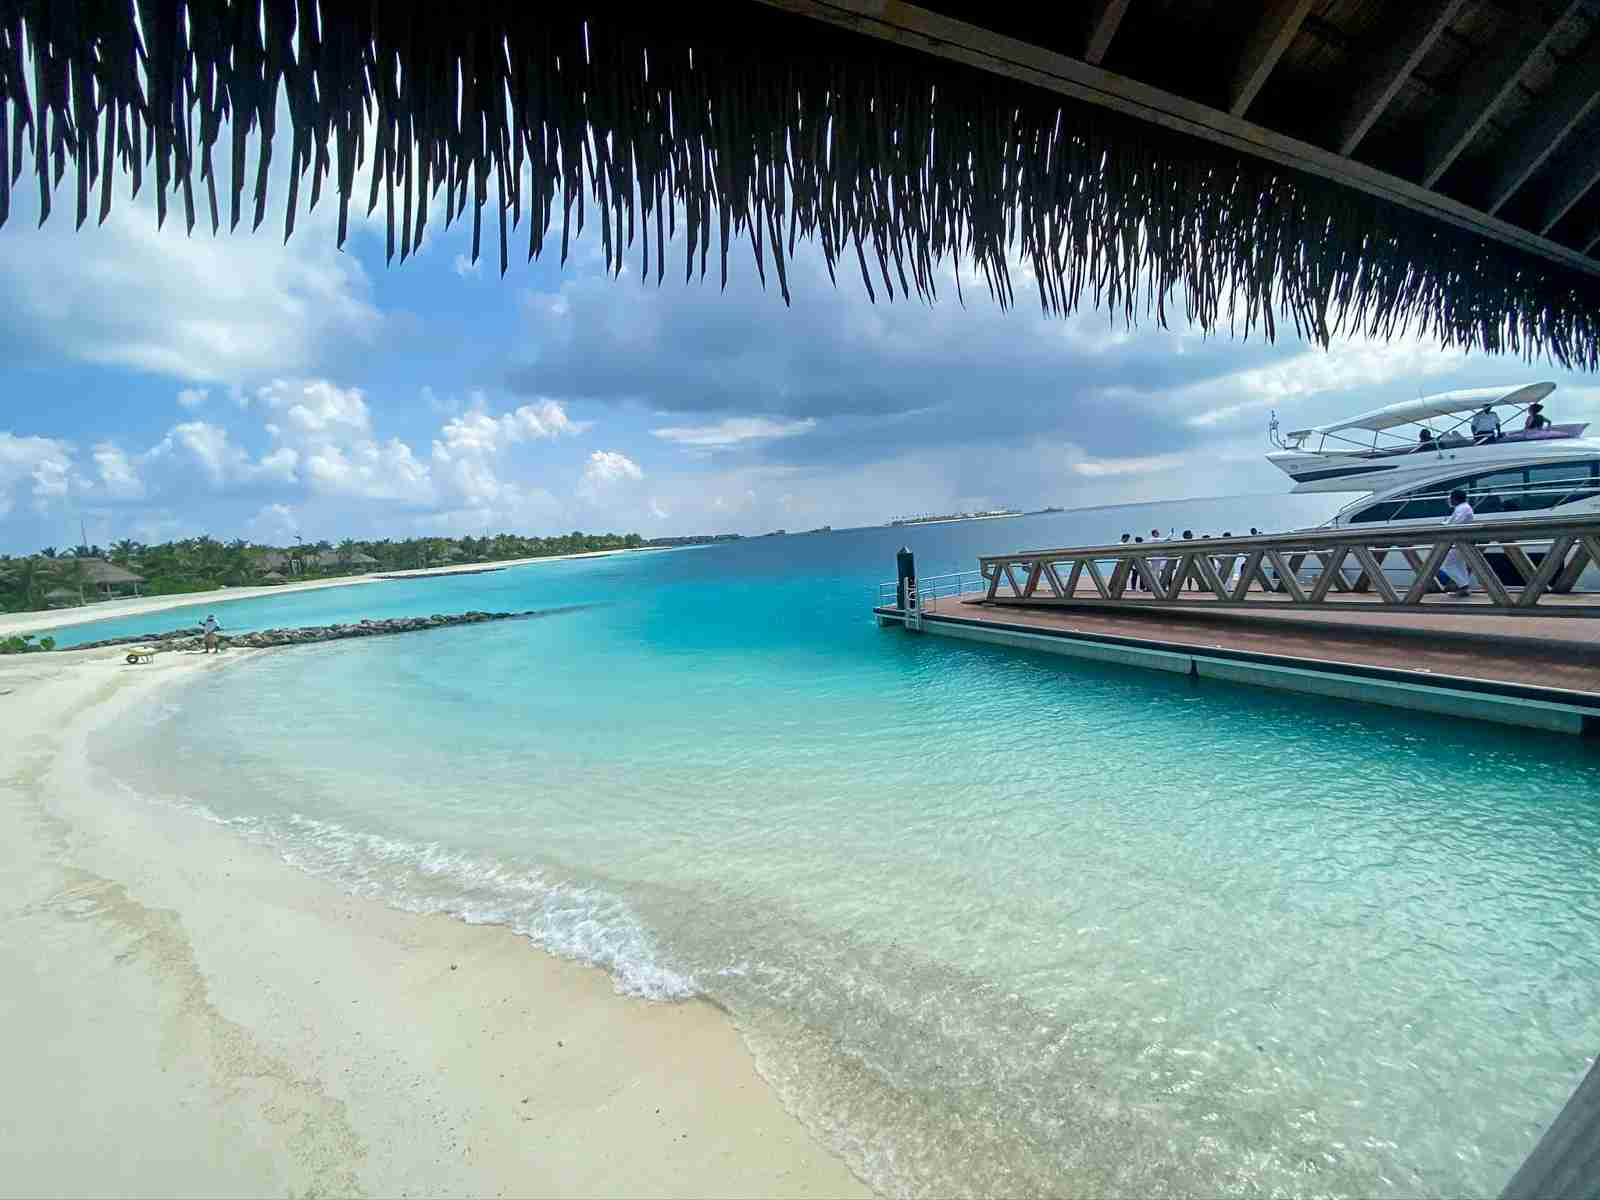 The Waldorf Astoria Maldives. (Photo by Brian Kelly/The Points Guy)